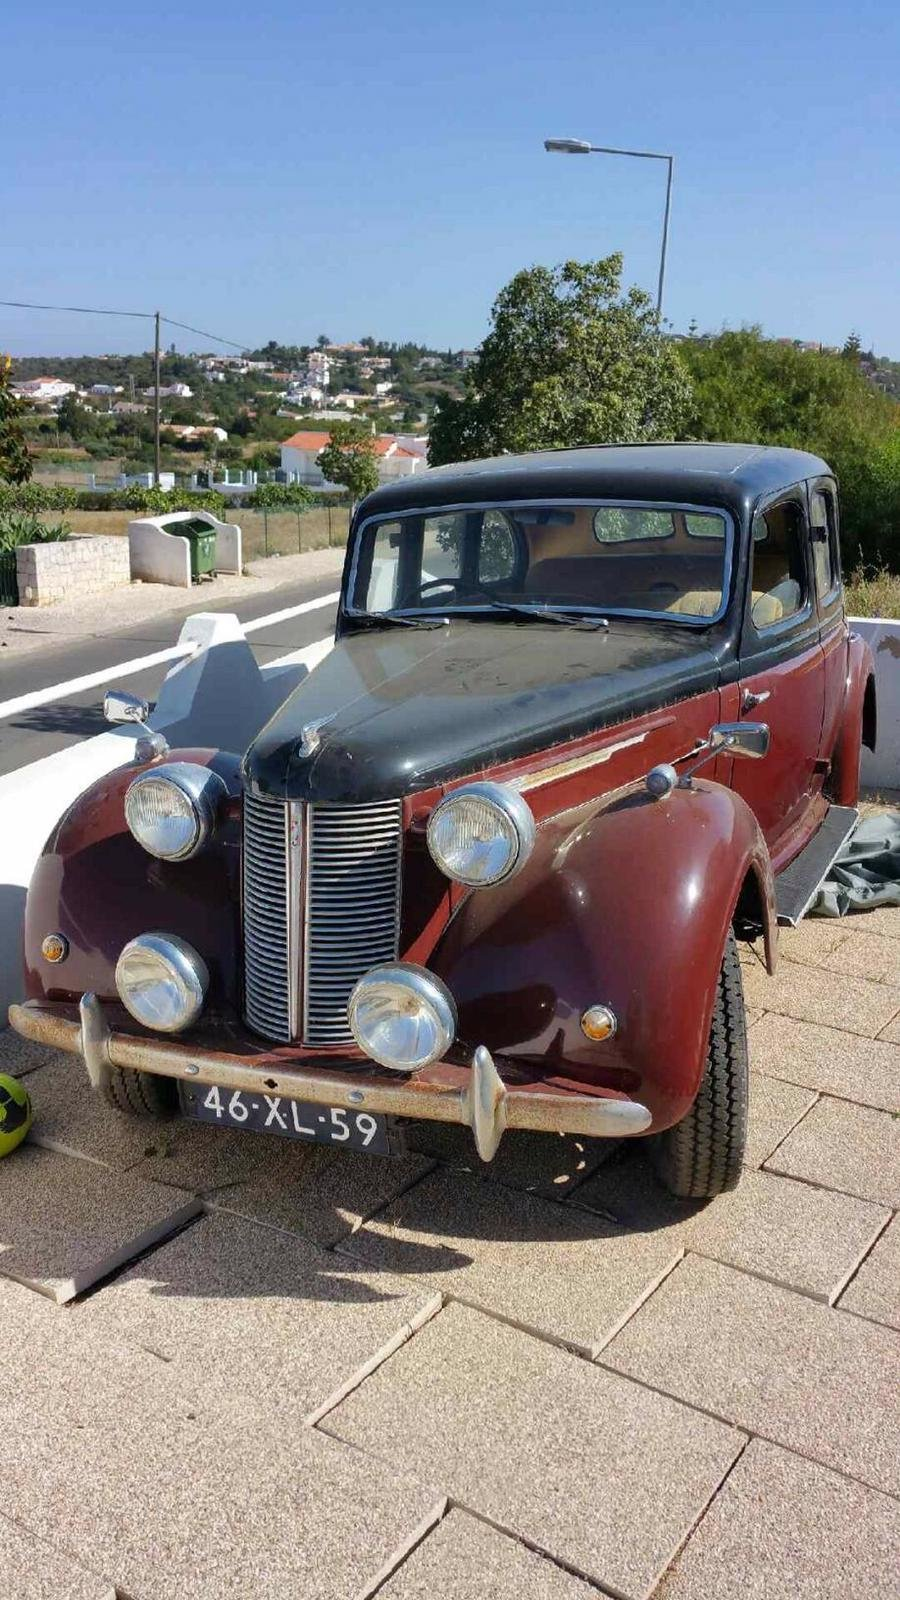 1946 Austin 16  Very original  For Sale (picture 1 of 1)